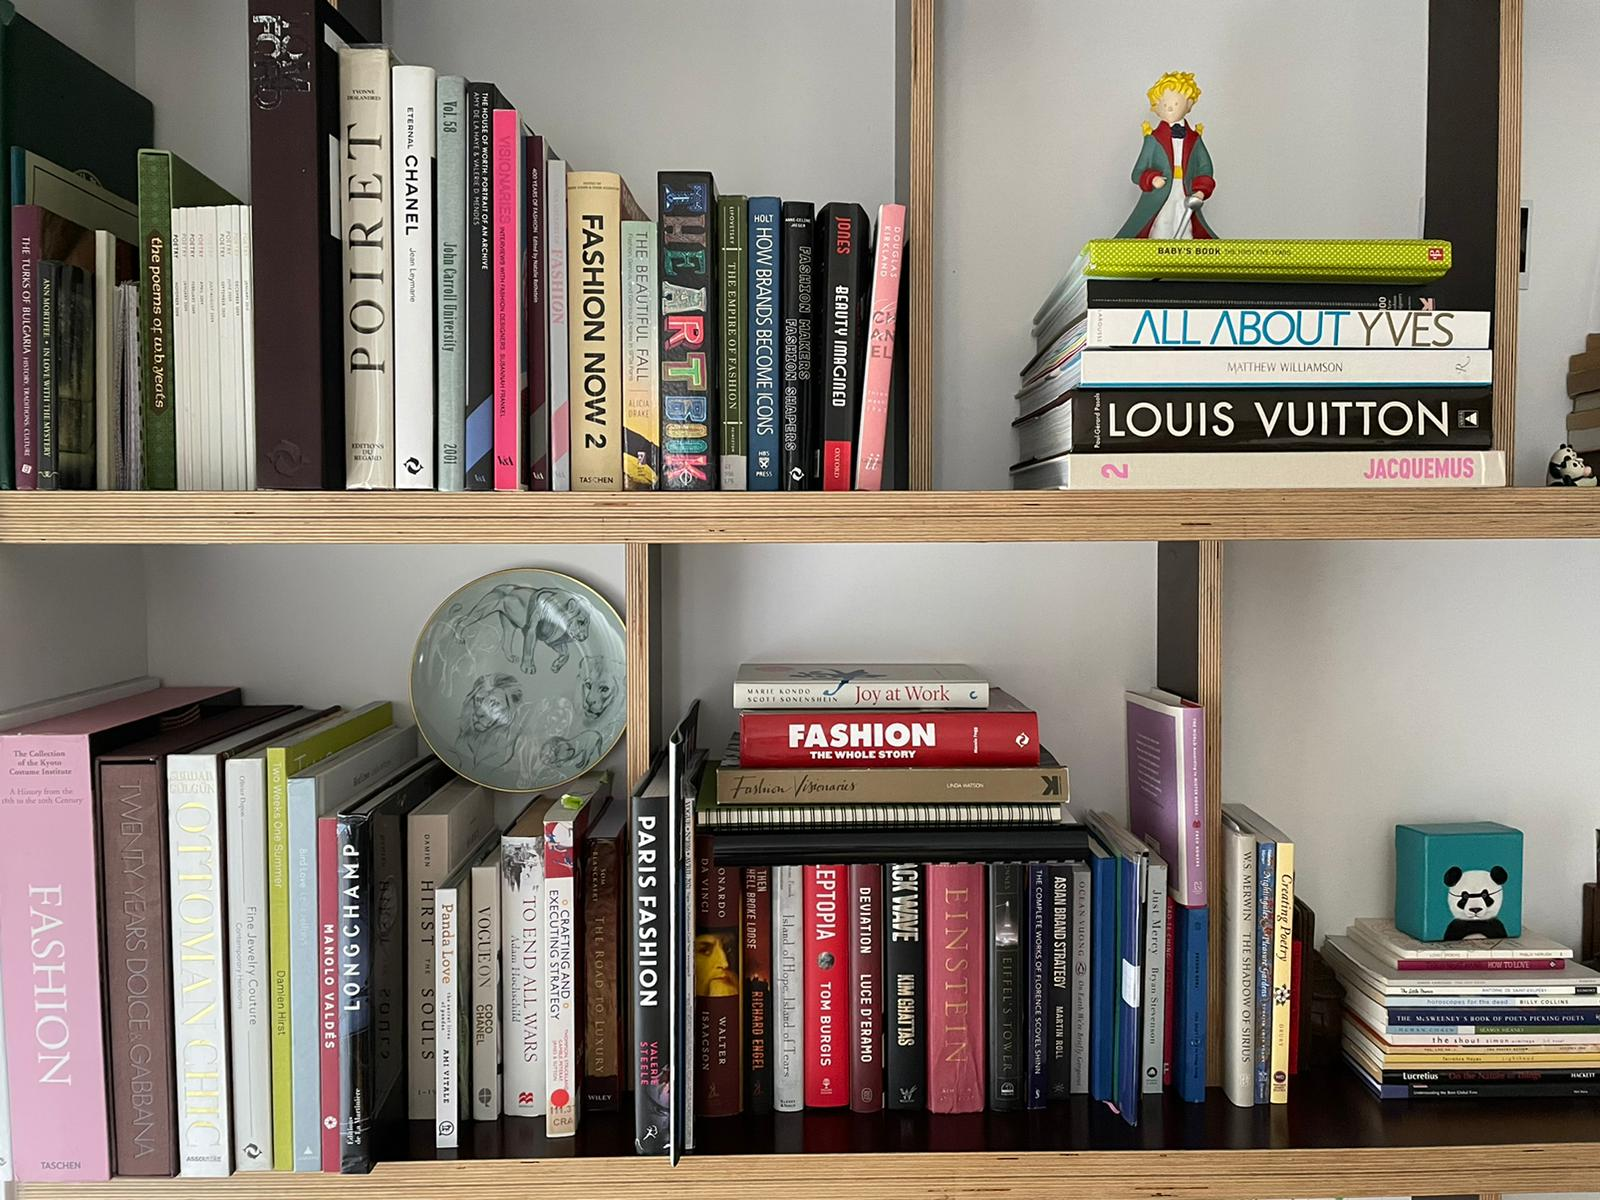 Top 10 Fashion books to read